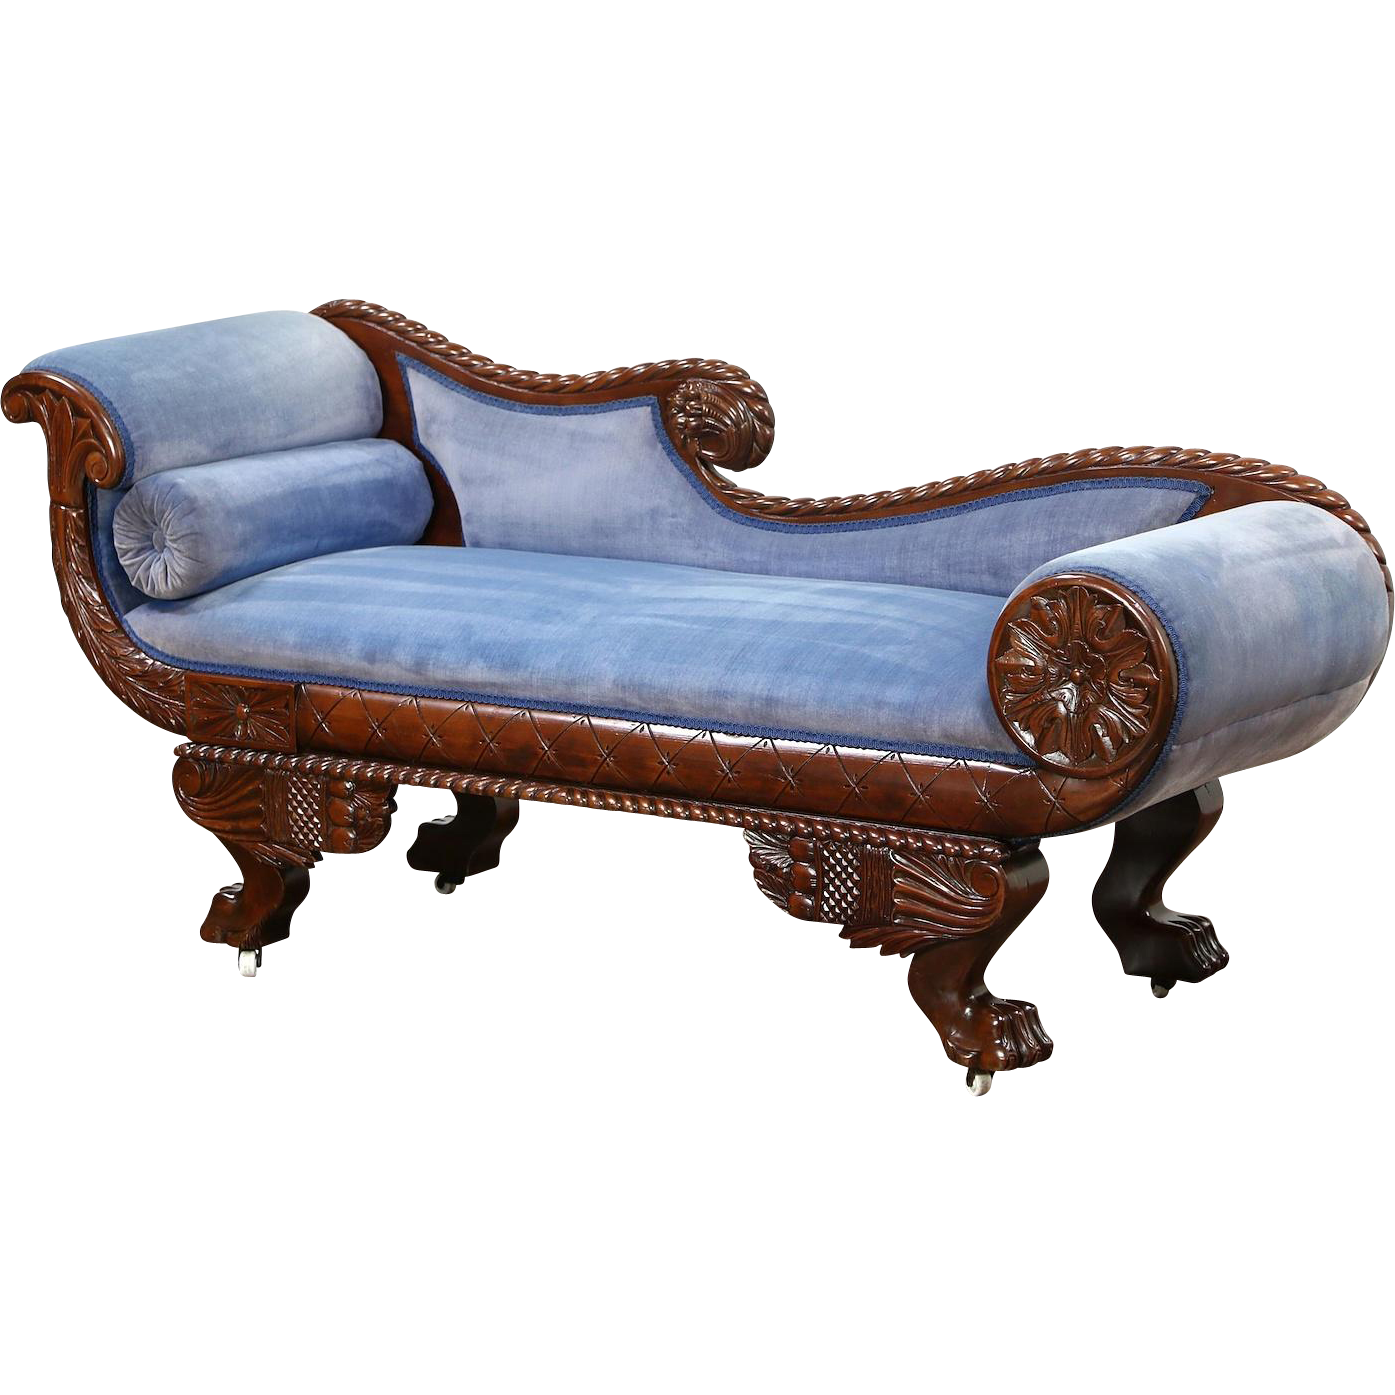 Of Carved Sofa Or Era Empire RecamierLounge Hand Solid 1895 Was An Tl3FKJuc1